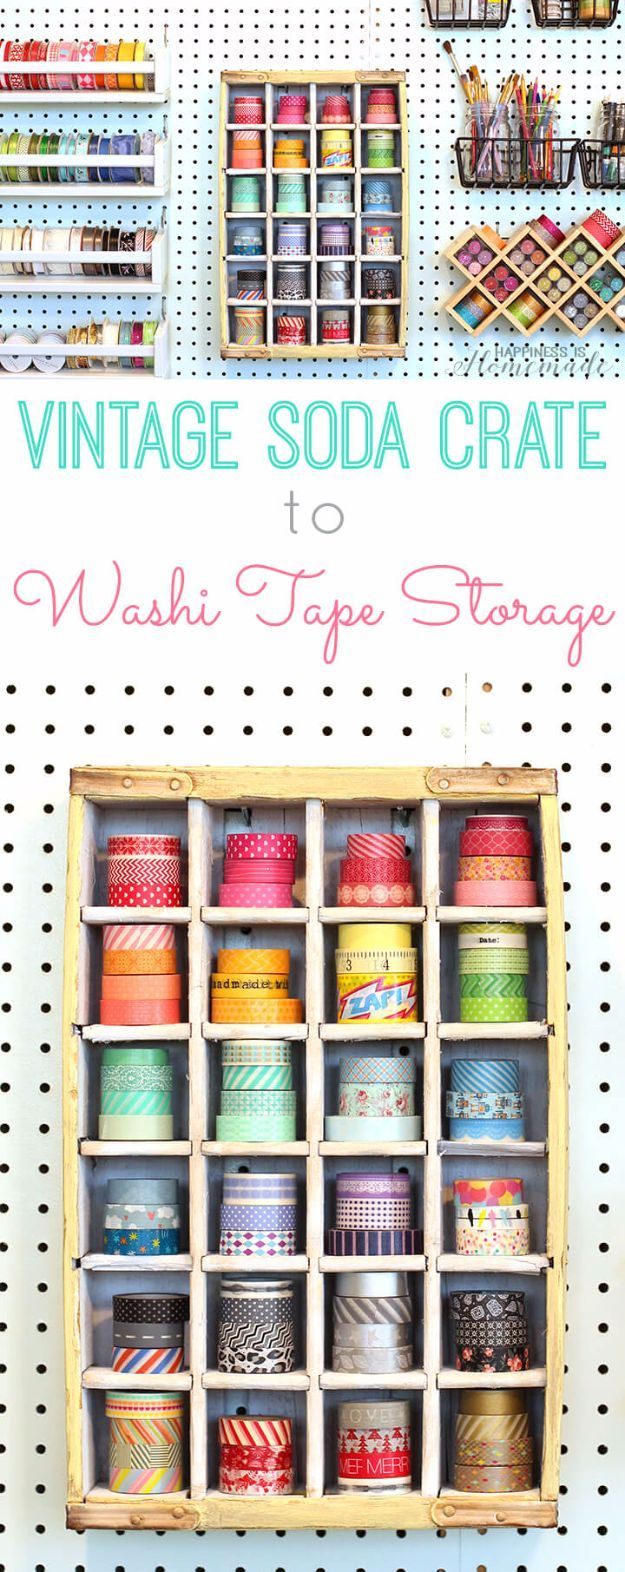 35 cool craft room storage ideas pinterest diy craft room storage ideas and craft room organization projects vintage soda crate storage solutioingenieria Images